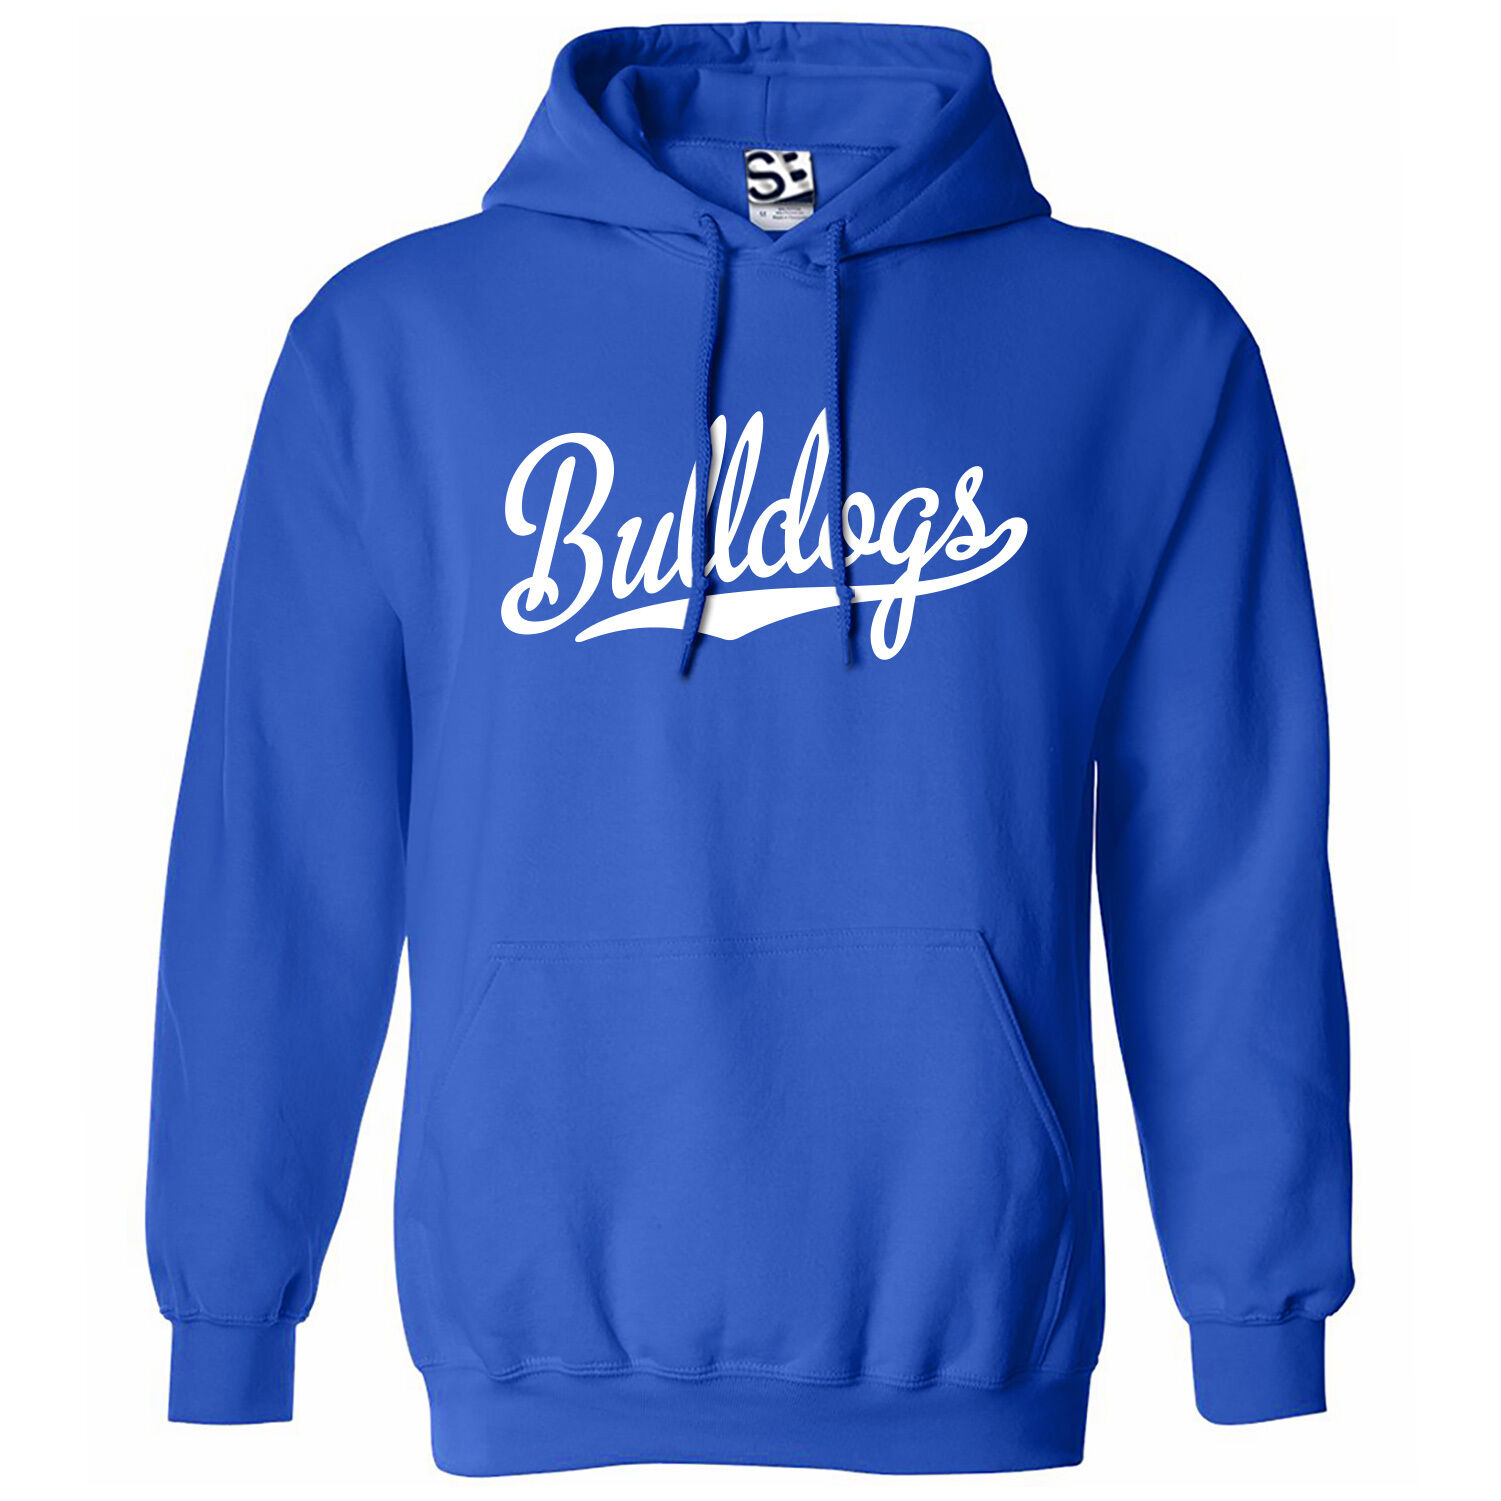 Bulldogs Script & Tail HOODIE - Hooded School Sports Team Sweatshirt  All Farbes